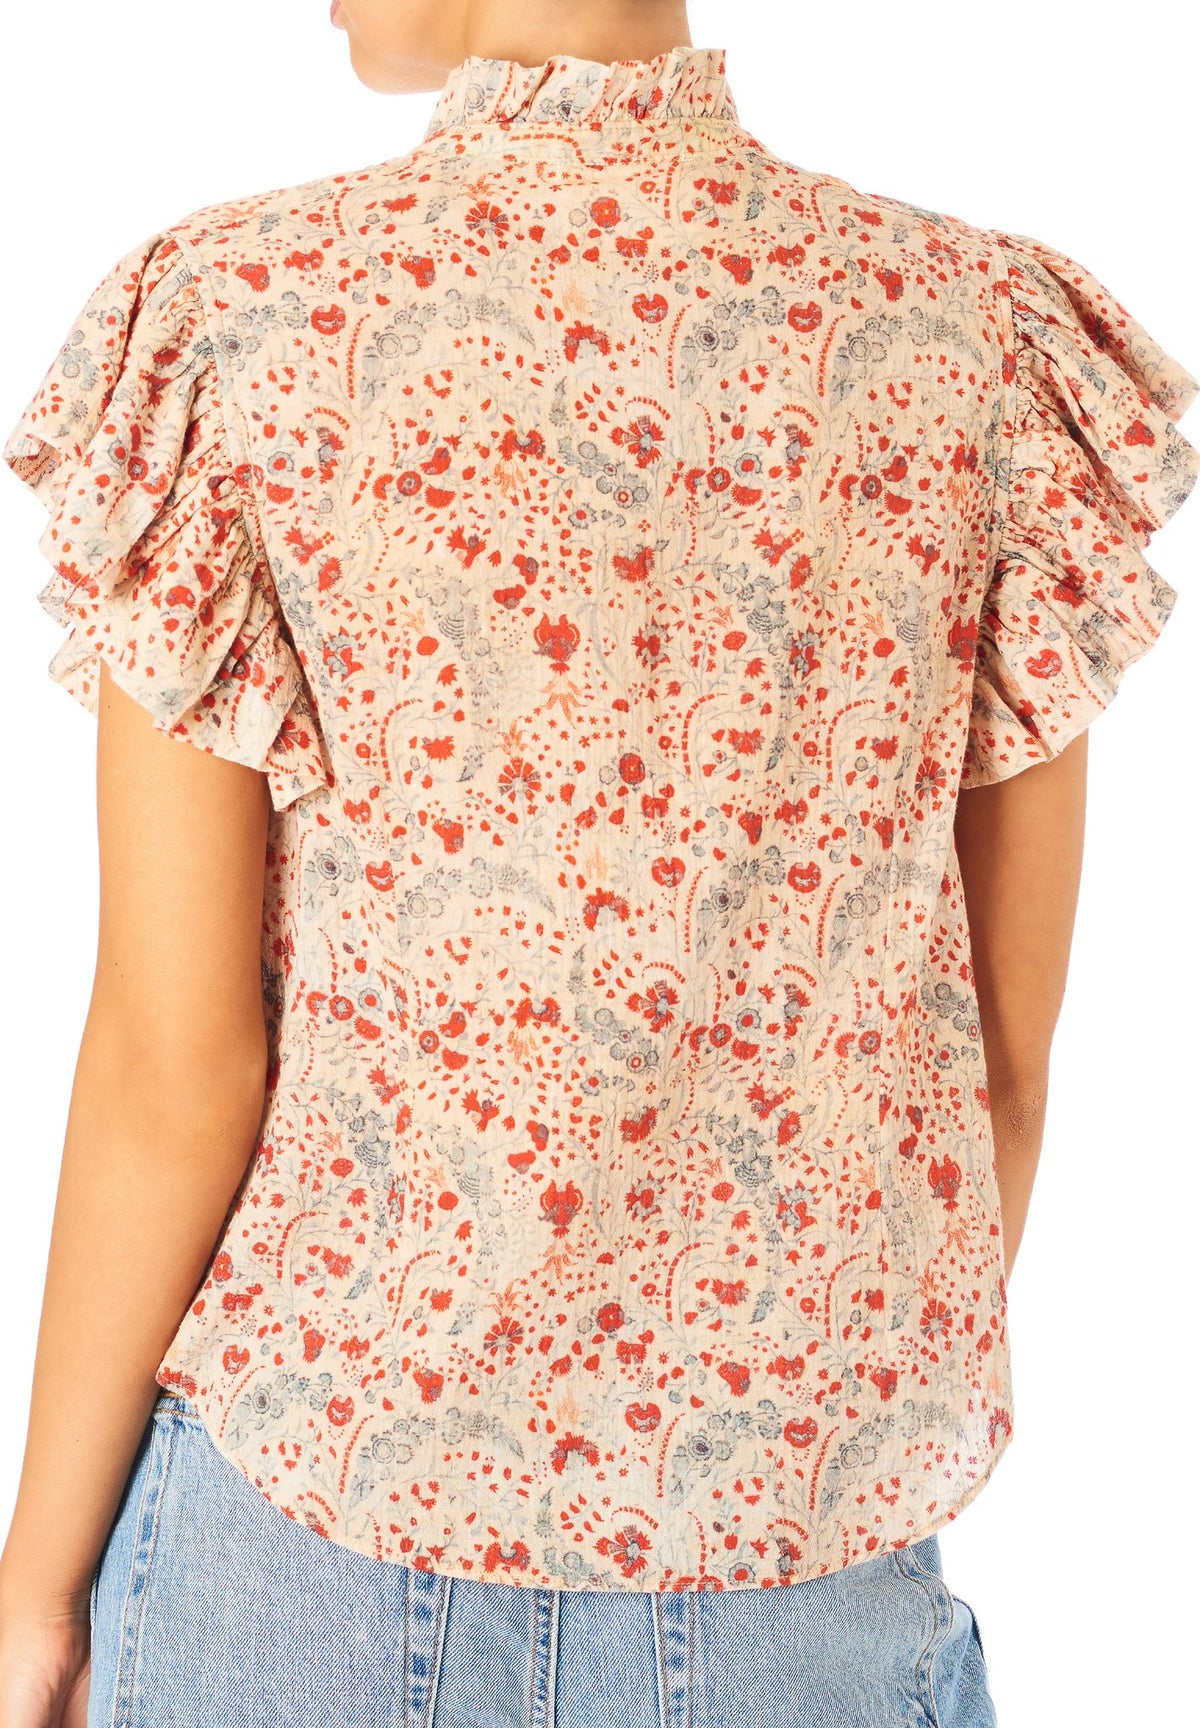 Kelby Print Top - Multi